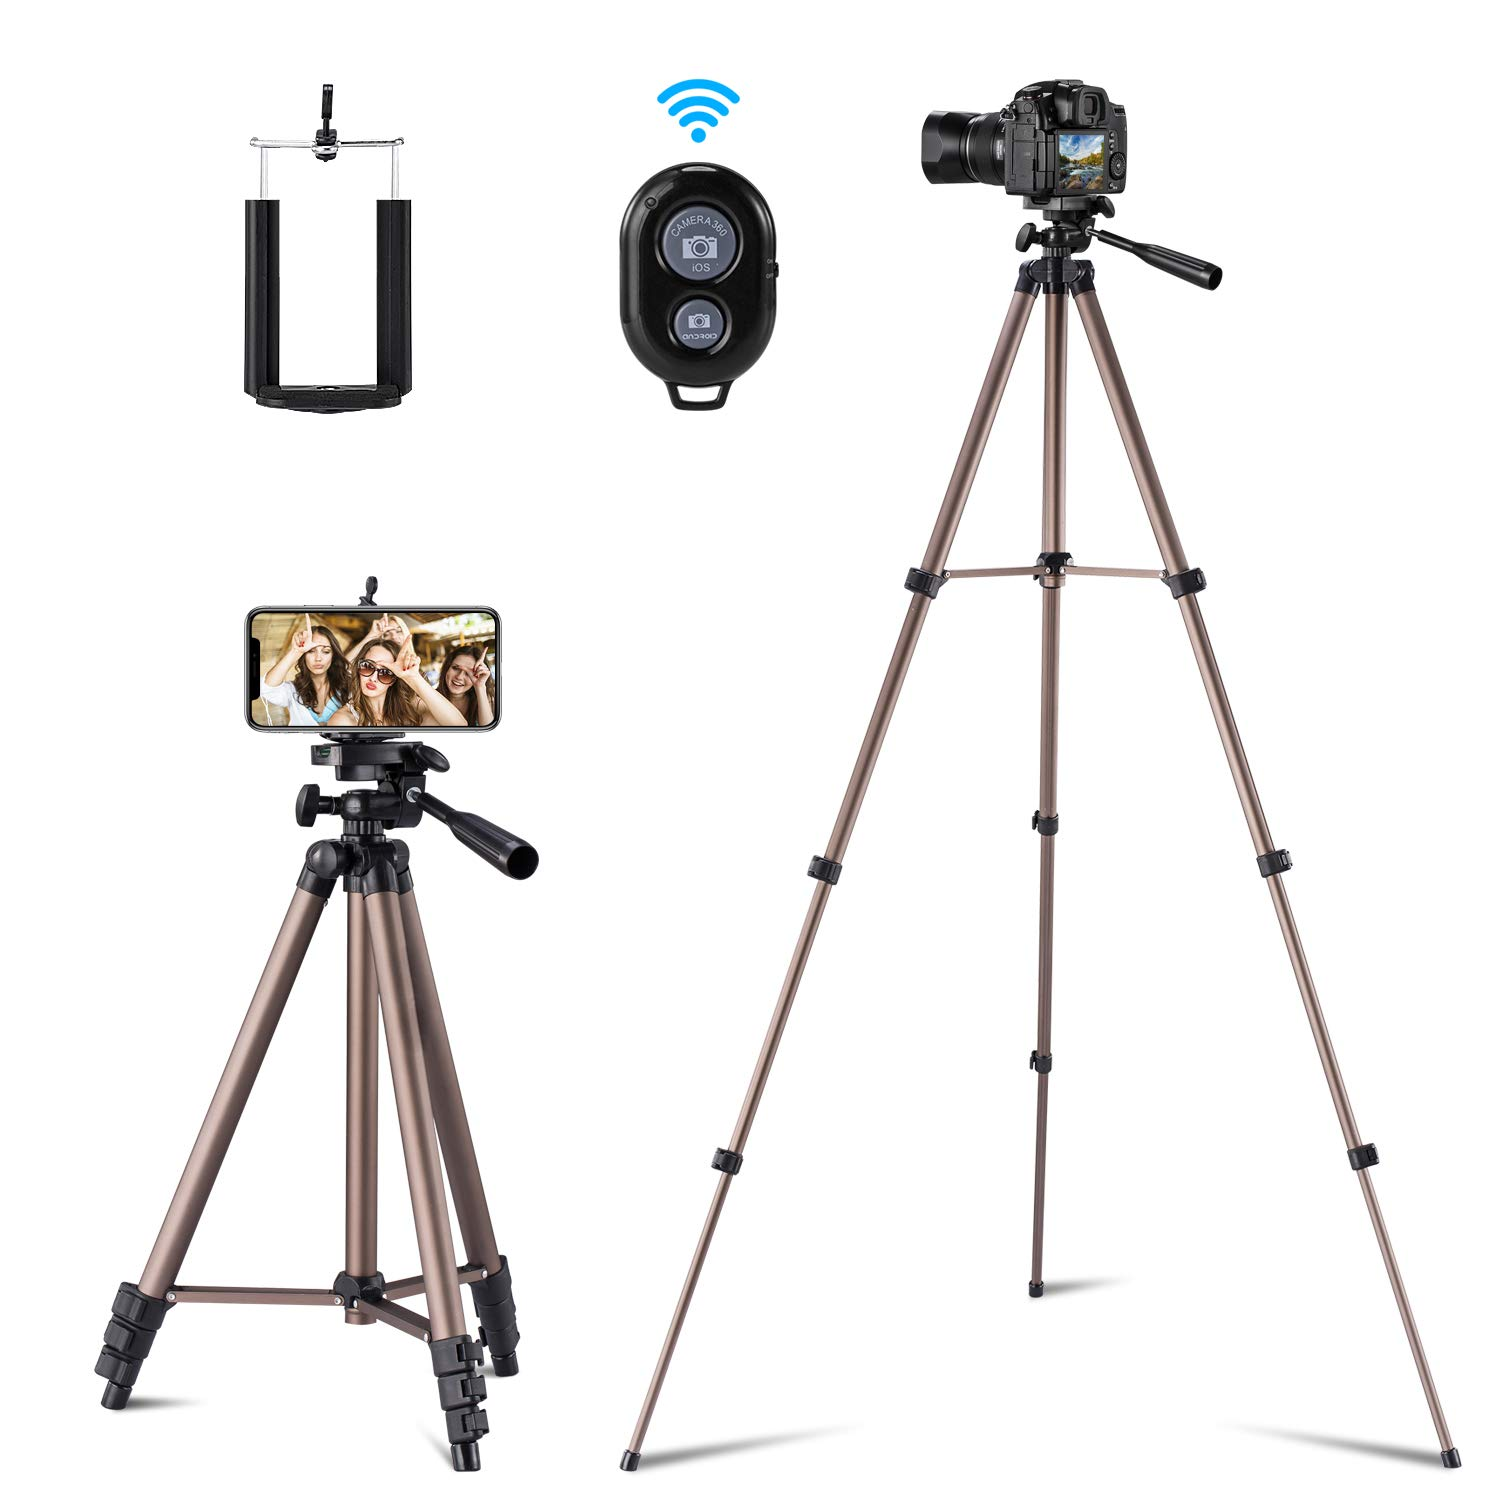 Apsung 50-inch Camera Tripod,Lightweight Portable Phone Tripod,with Carrying Bag & Wireless Remote & Cellphone Holder,Flexible Tripod Compatible with All Kinds of Smartphones/Camera/Action Camera